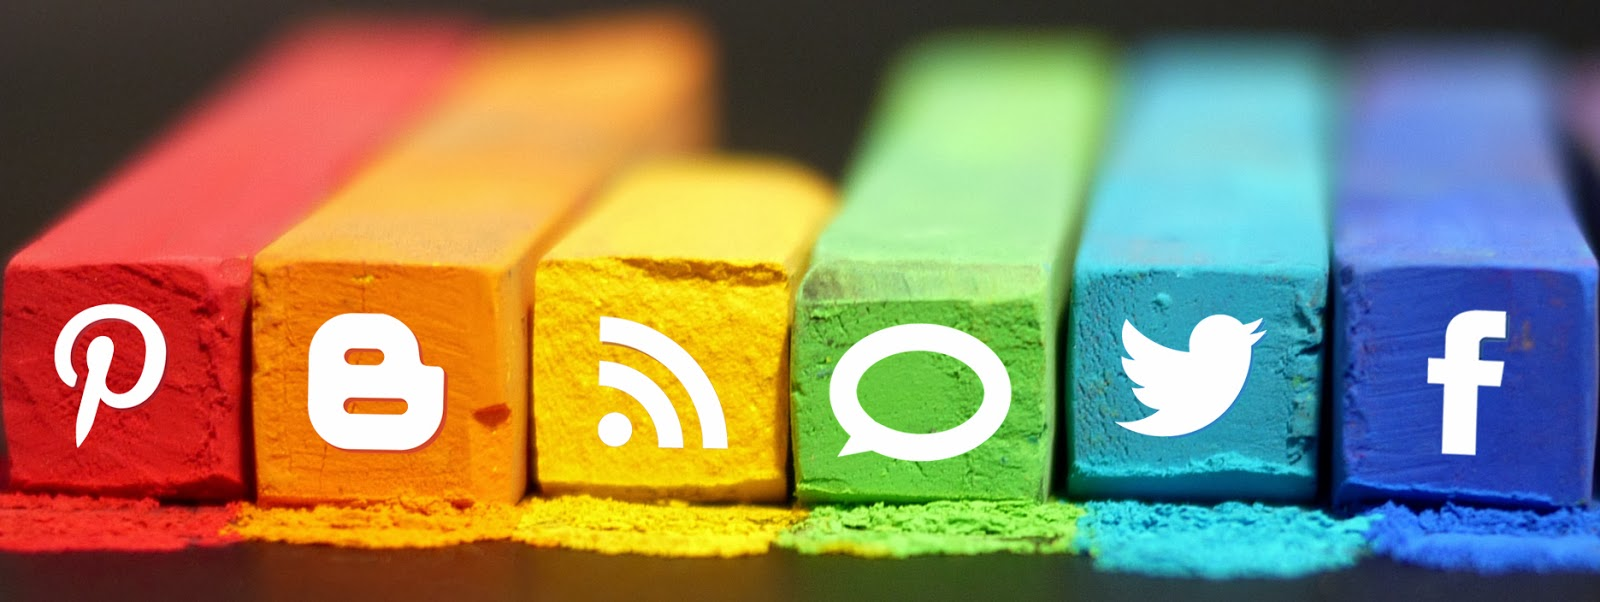 Online communications are an essential part of Internet brand building